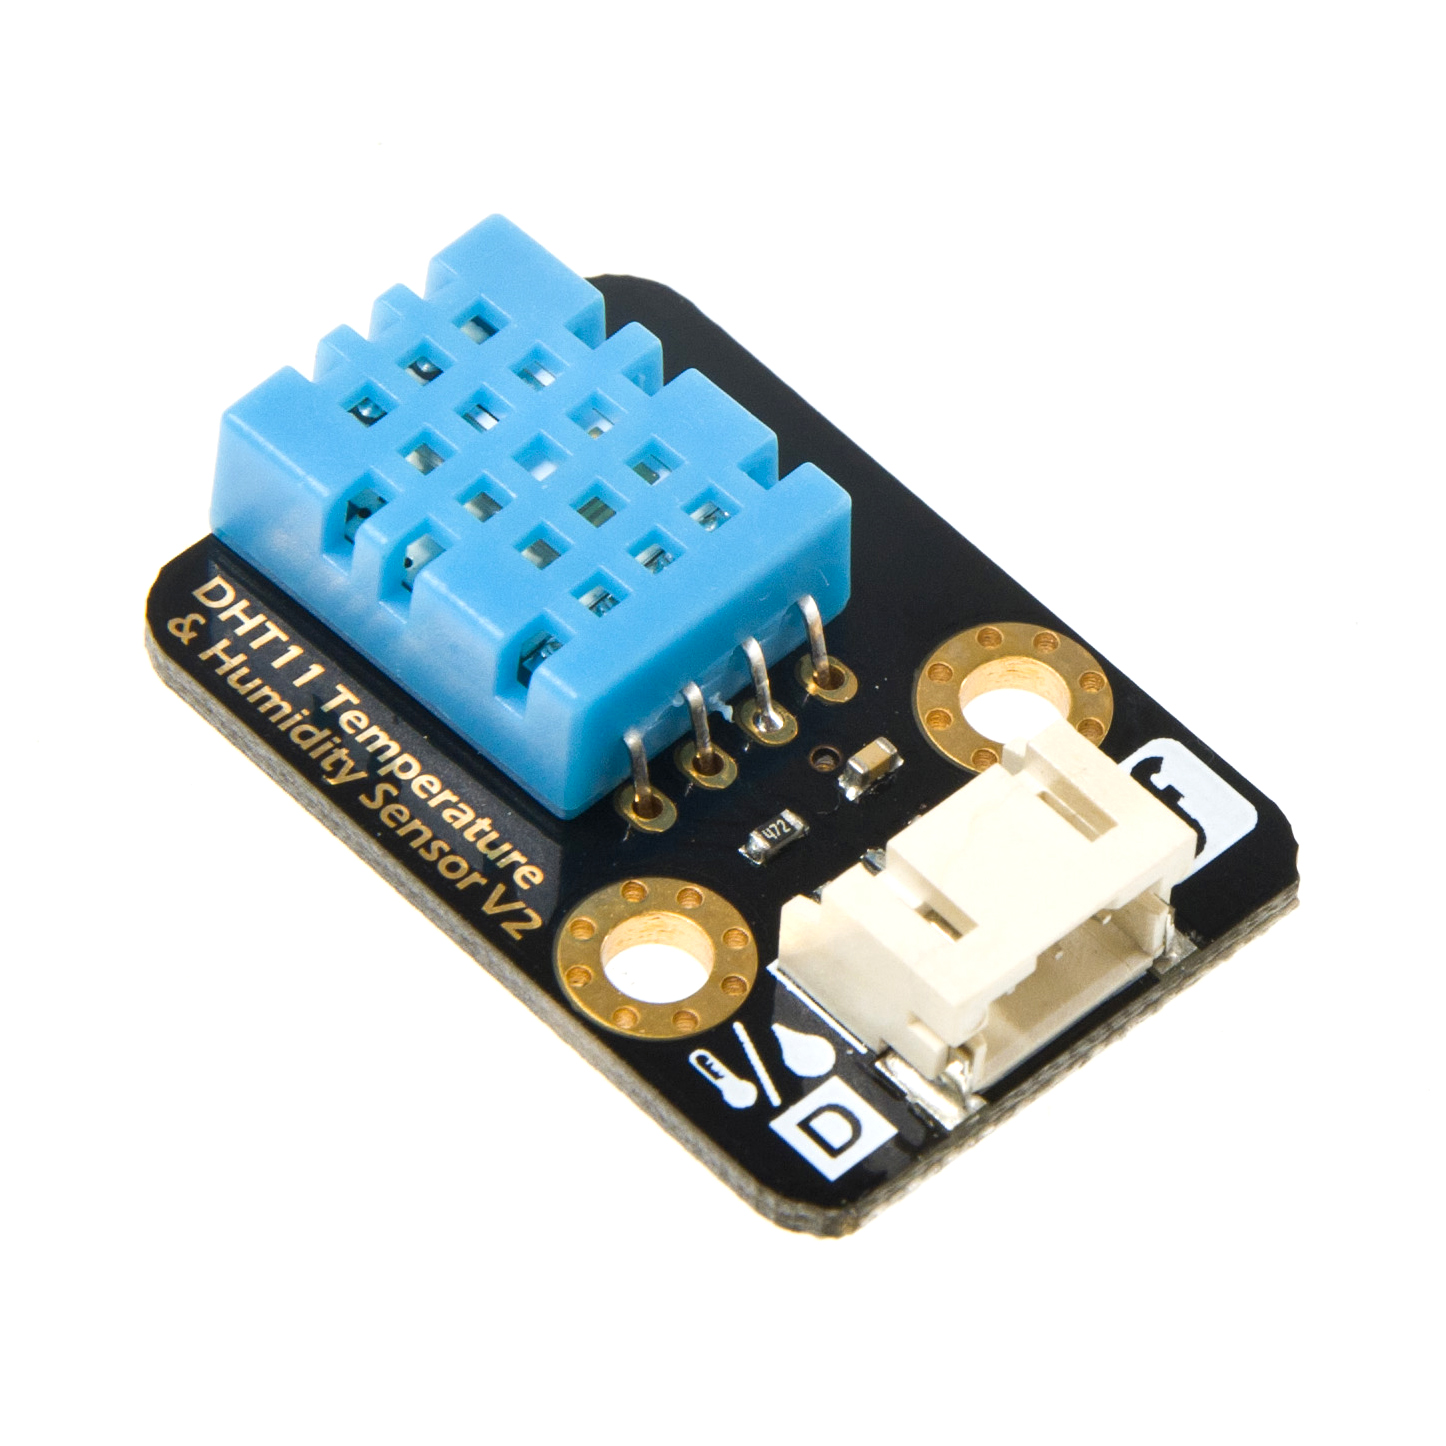 DHT11_Temperature_and_Humidity_Sensor__SKU__DFR0067_-DFRobot